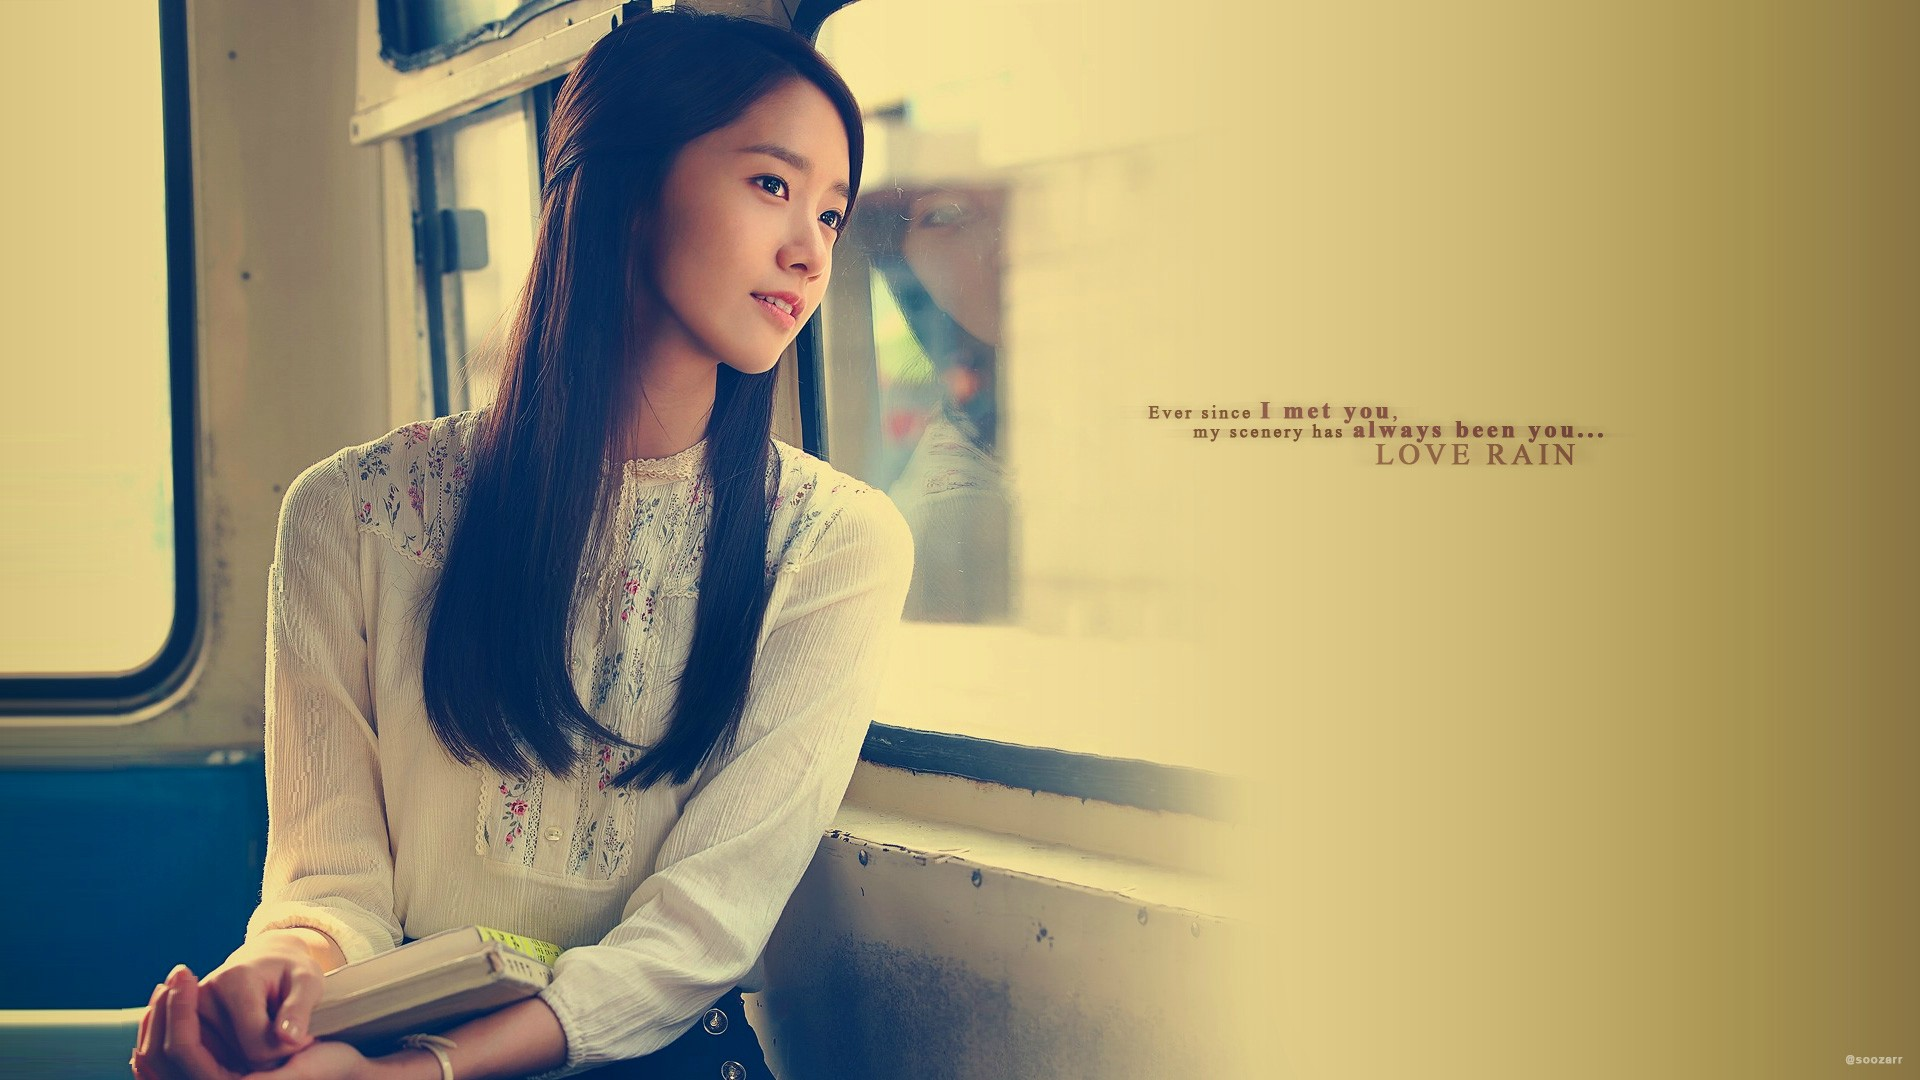 Love Rain wallpaper 1920x1080 #8146